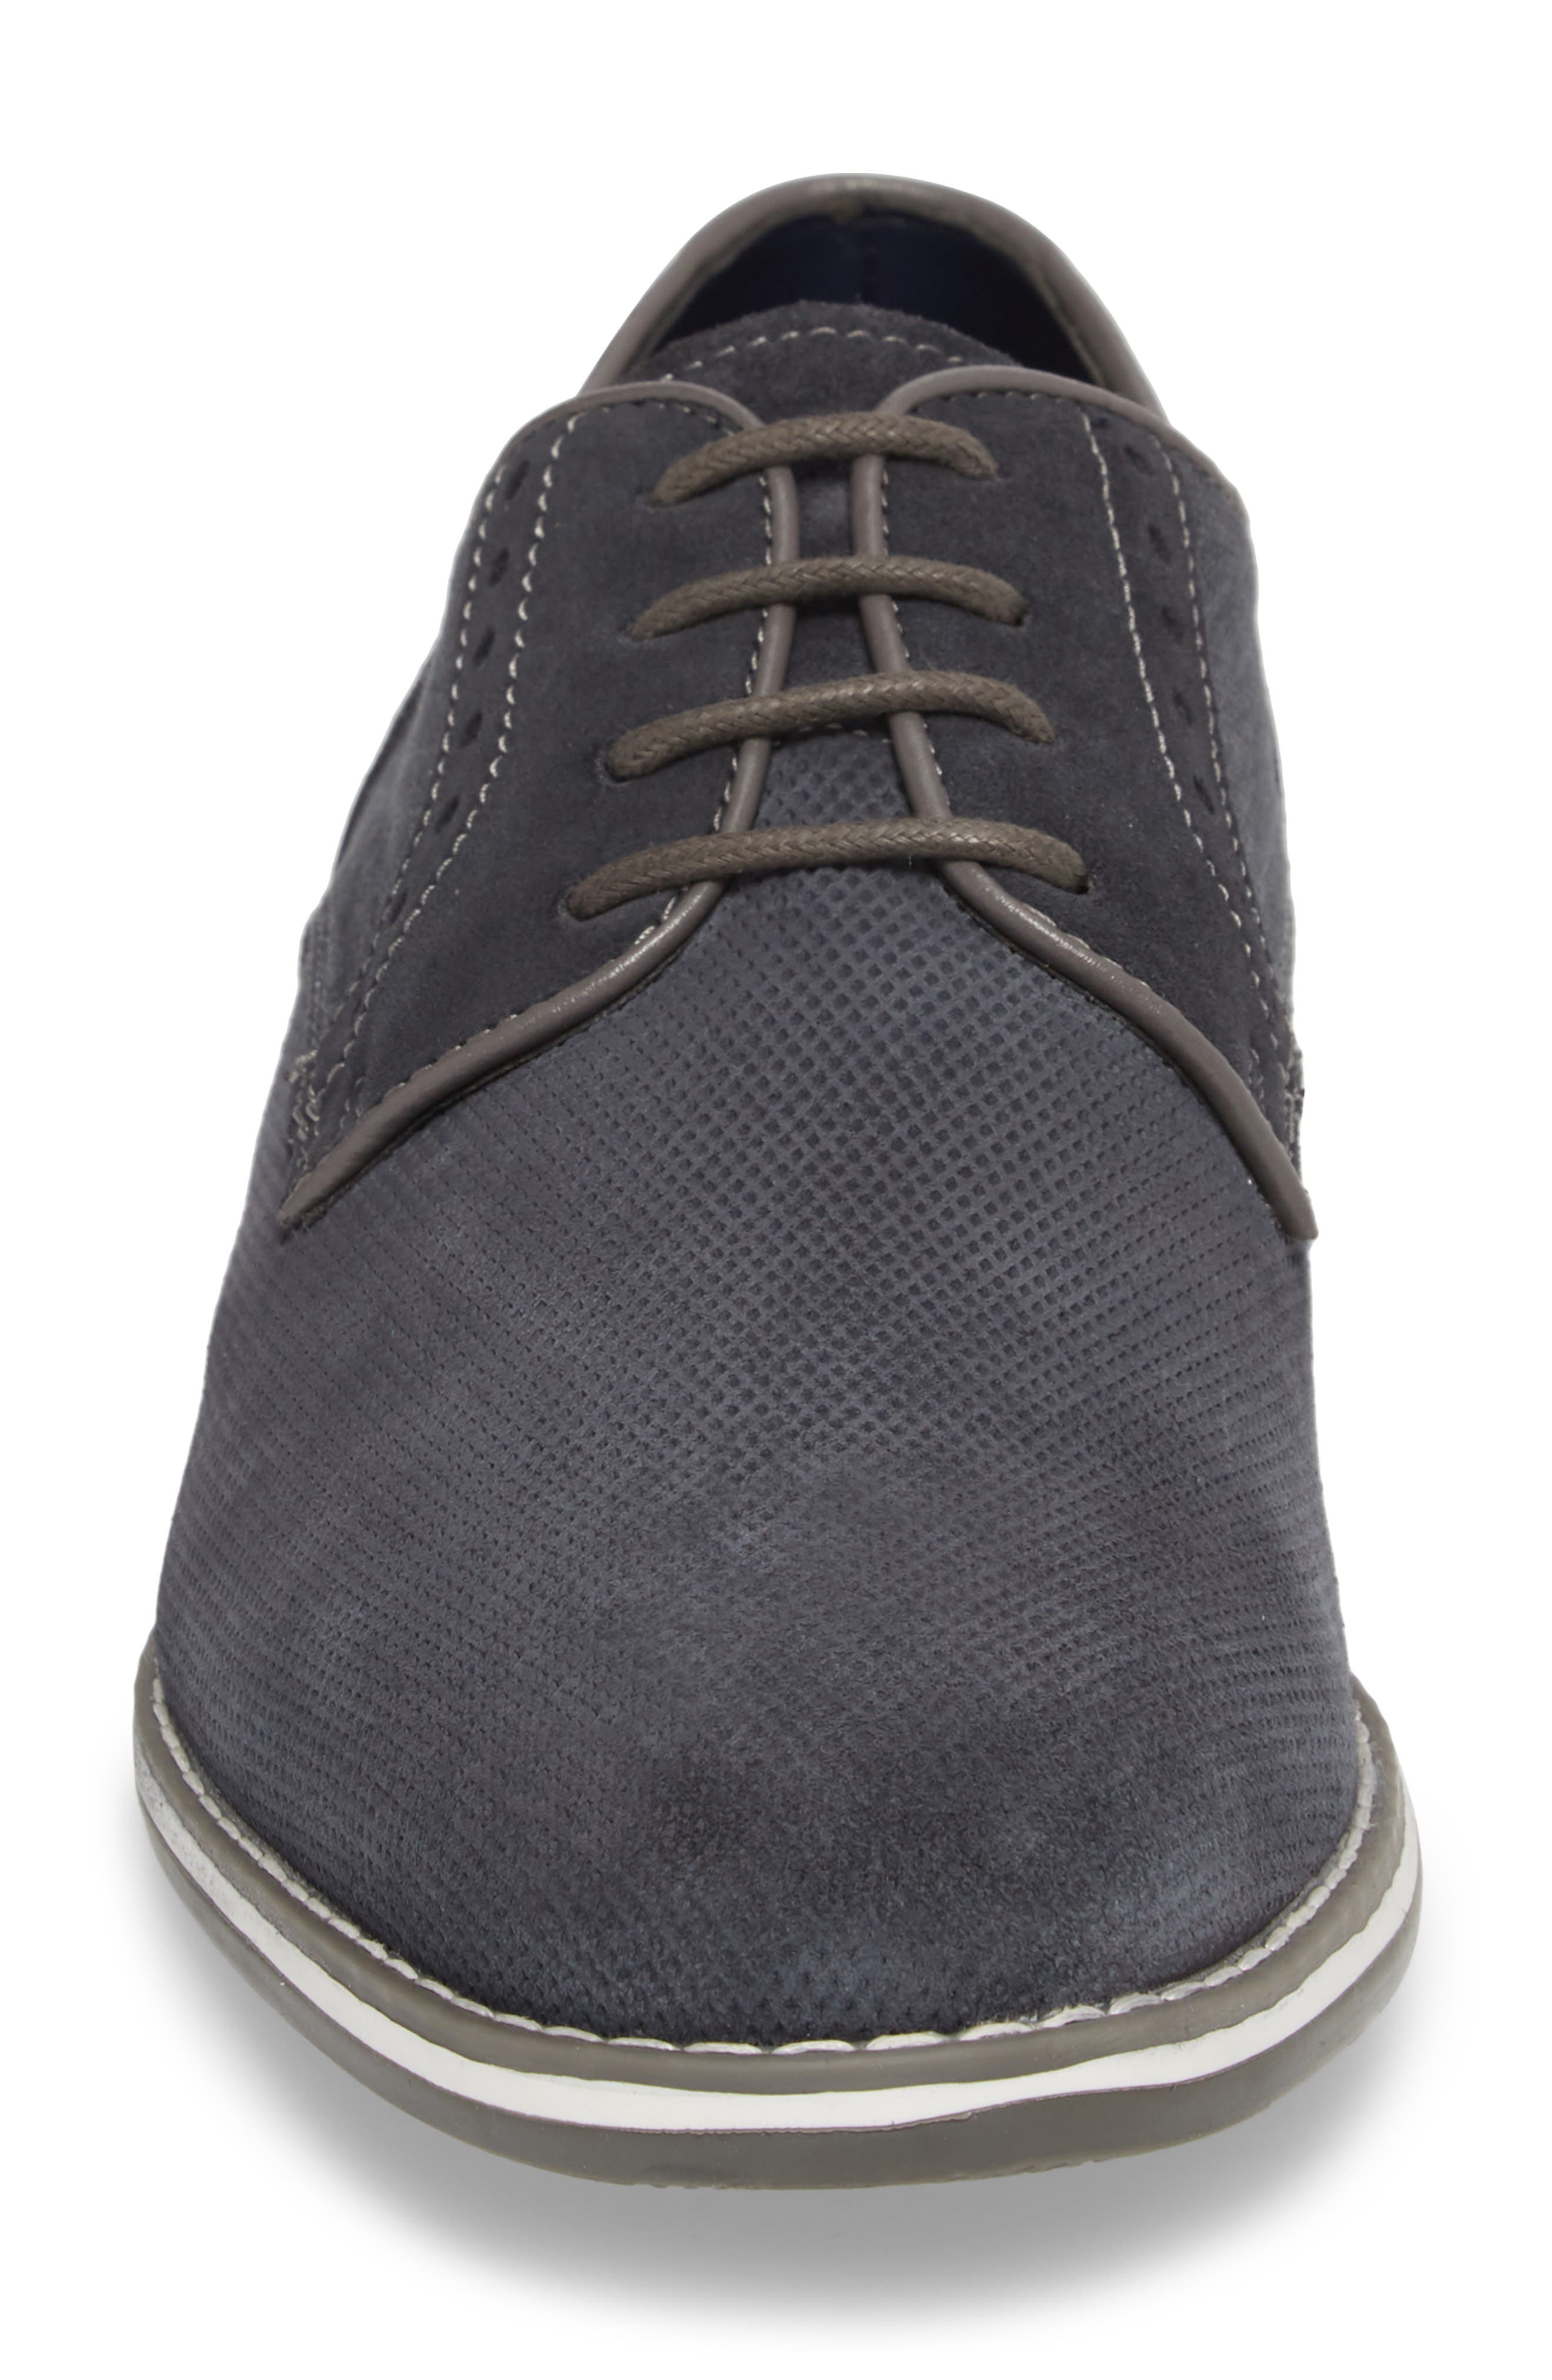 REACTION KENNETH COLE, Weiser Lace-up Derby, Alternate thumbnail 4, color, 410